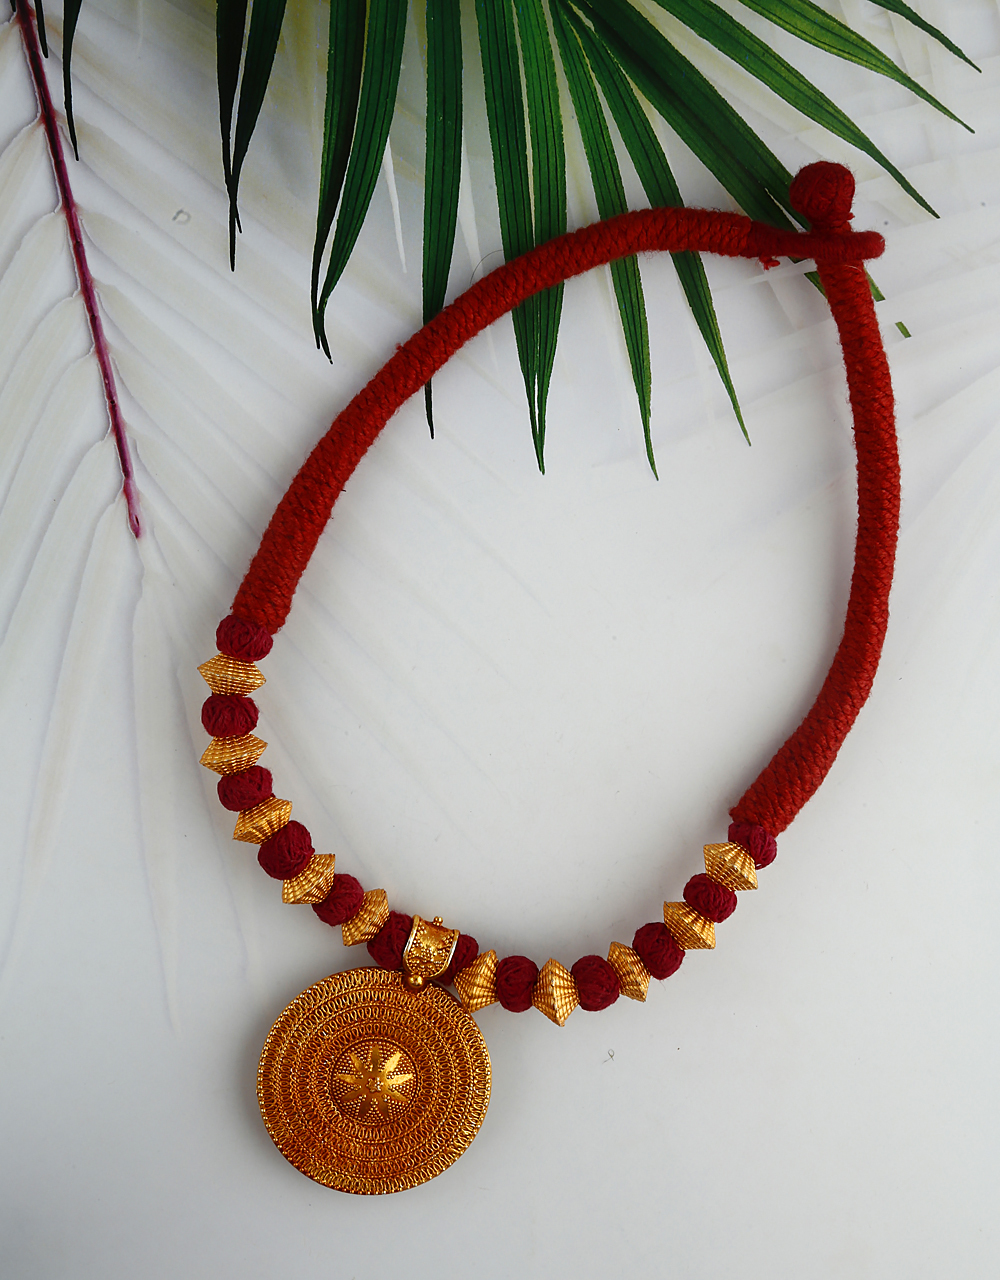 Fancy Red Colour Handmade Geru Polish Thread Necklace for Women/Girls